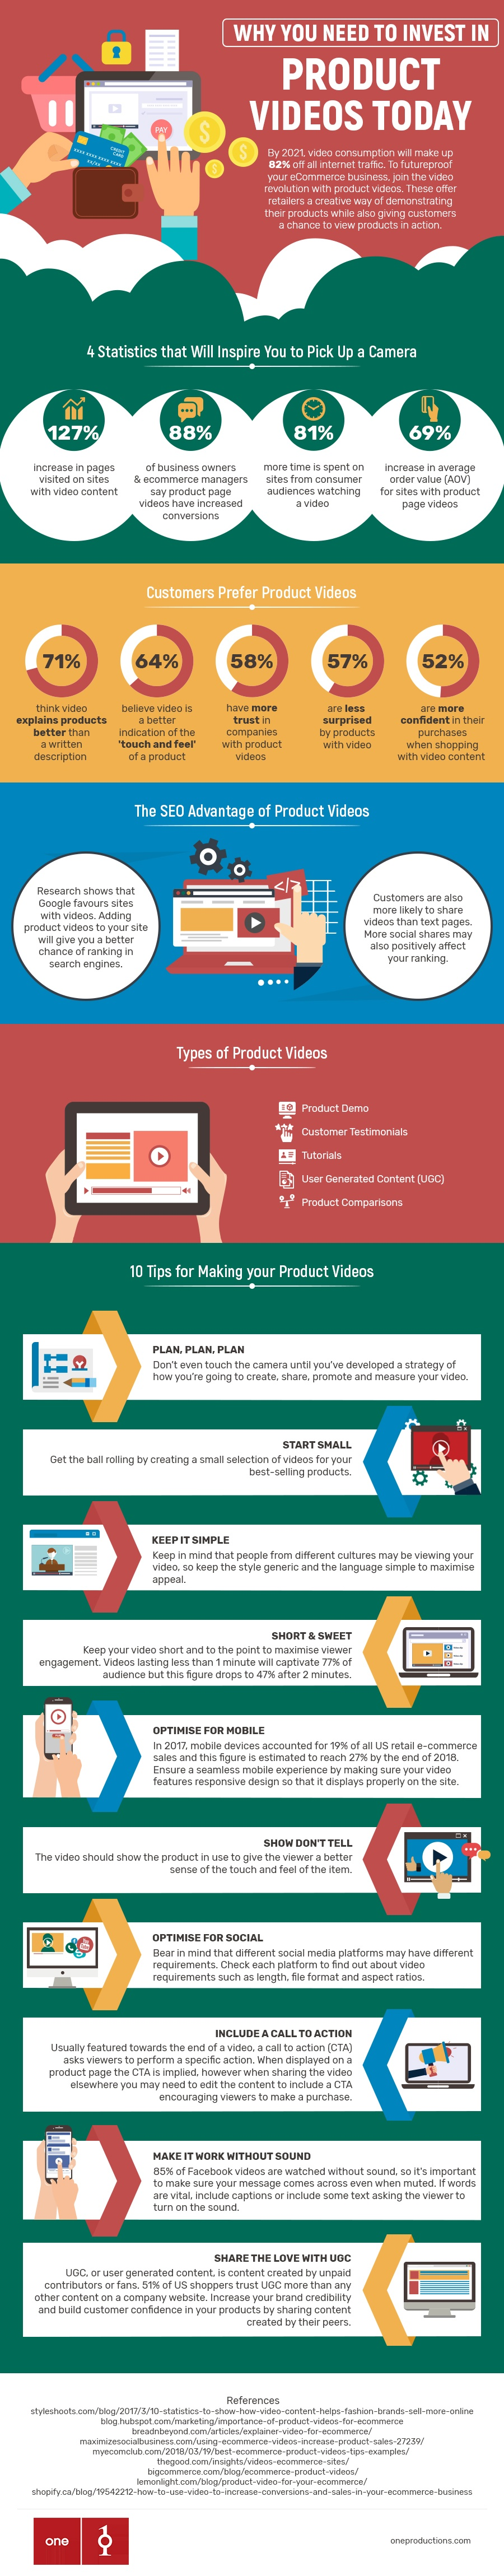 product videos Infographic